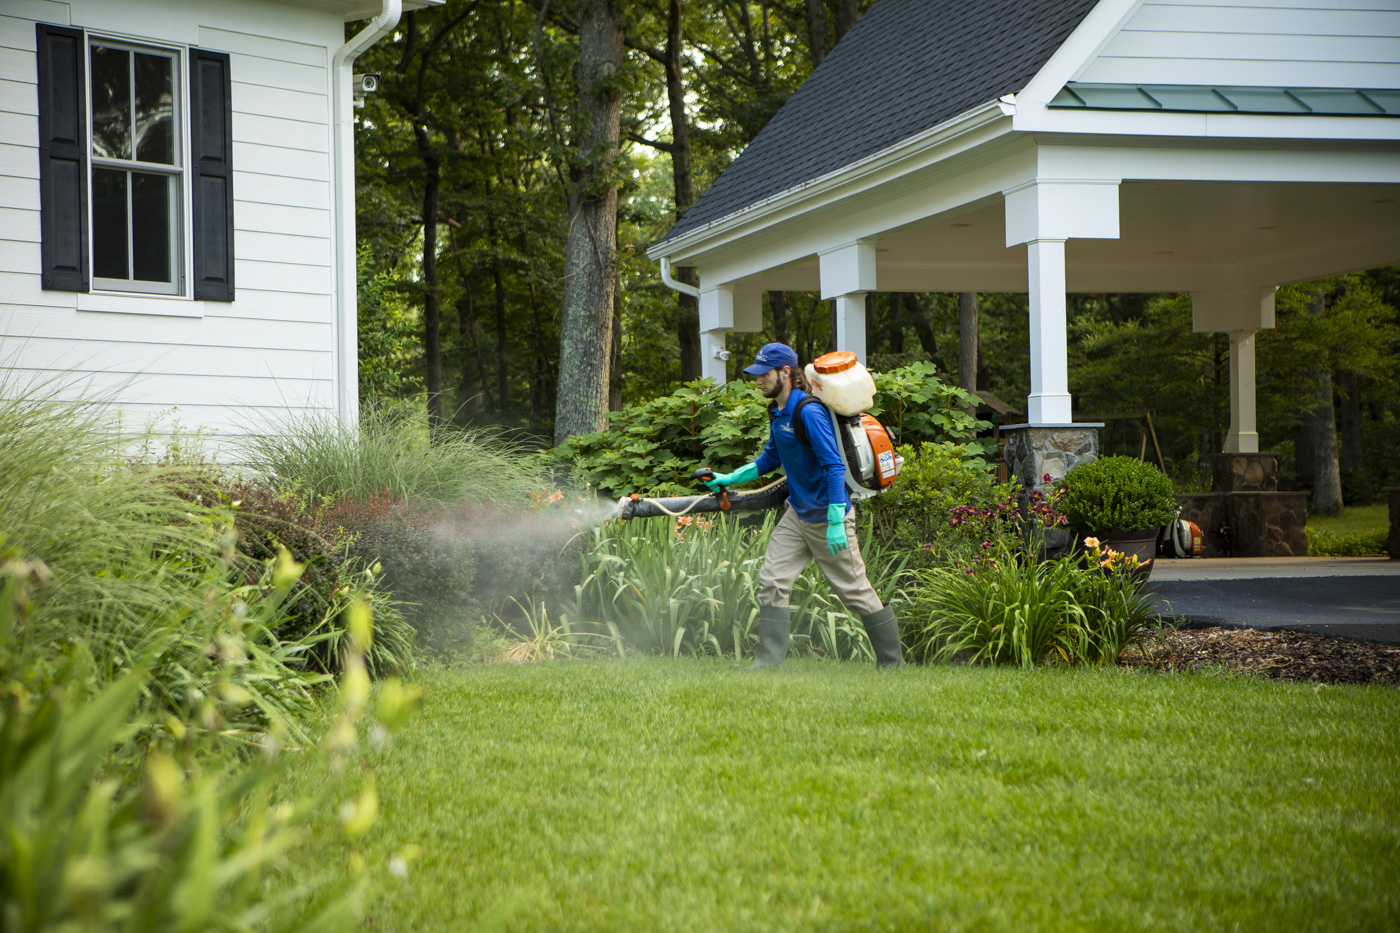 Tick & Mosquito Spraying Near Me: How to Hire the Right Company in Ashburn, Leesburg, or Aldie, VA